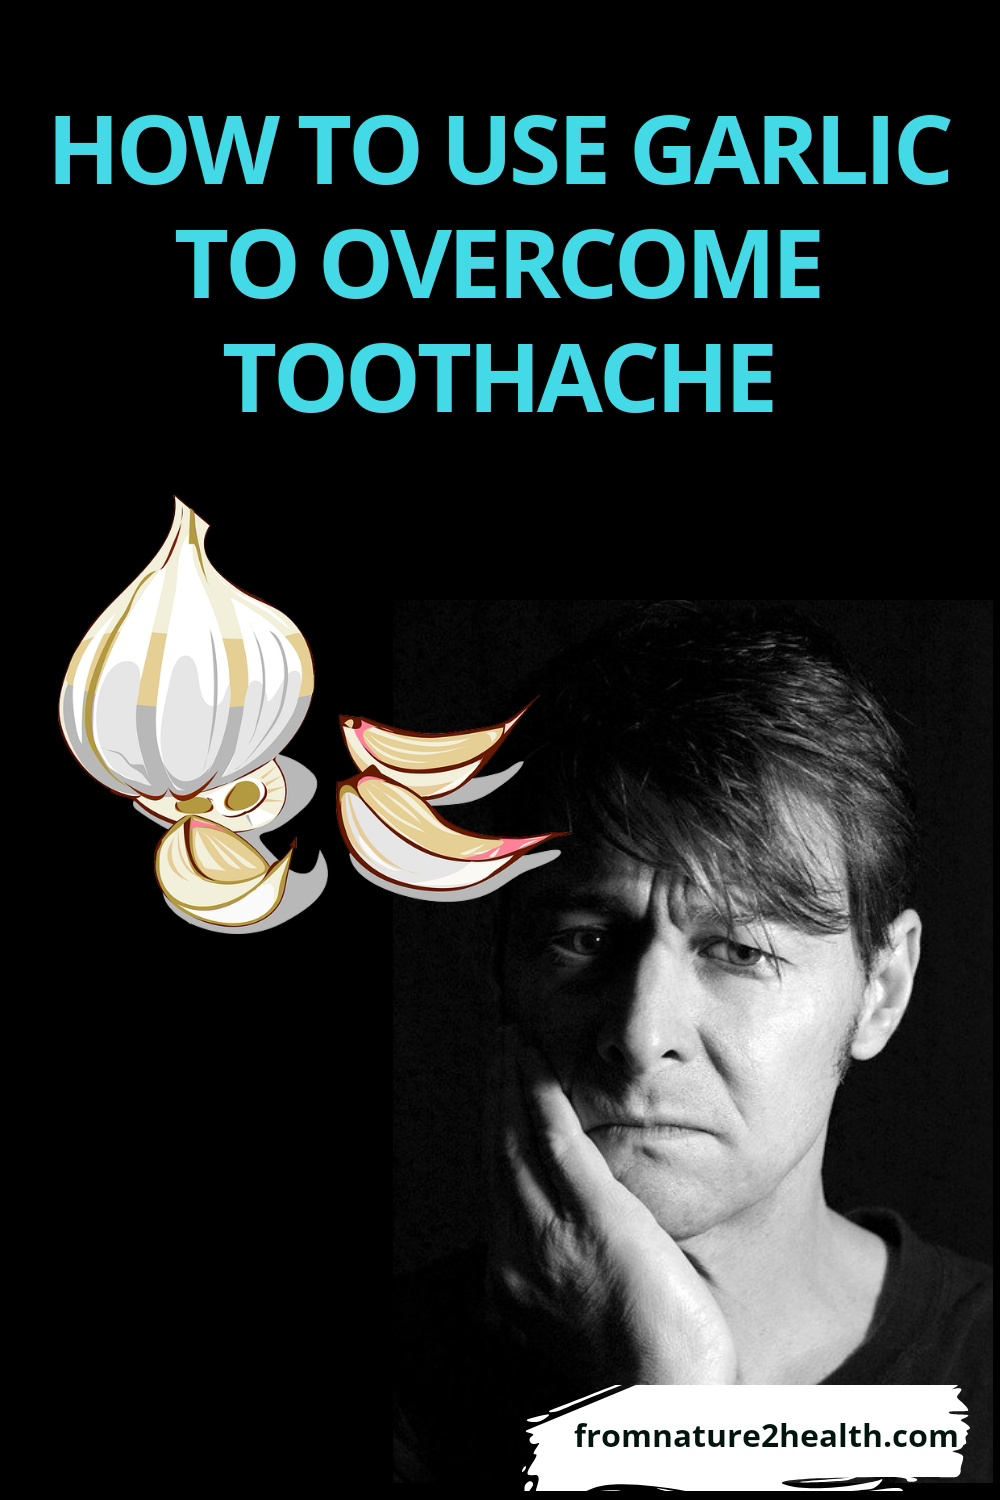 How To Use Garlic To Overcome Toothache